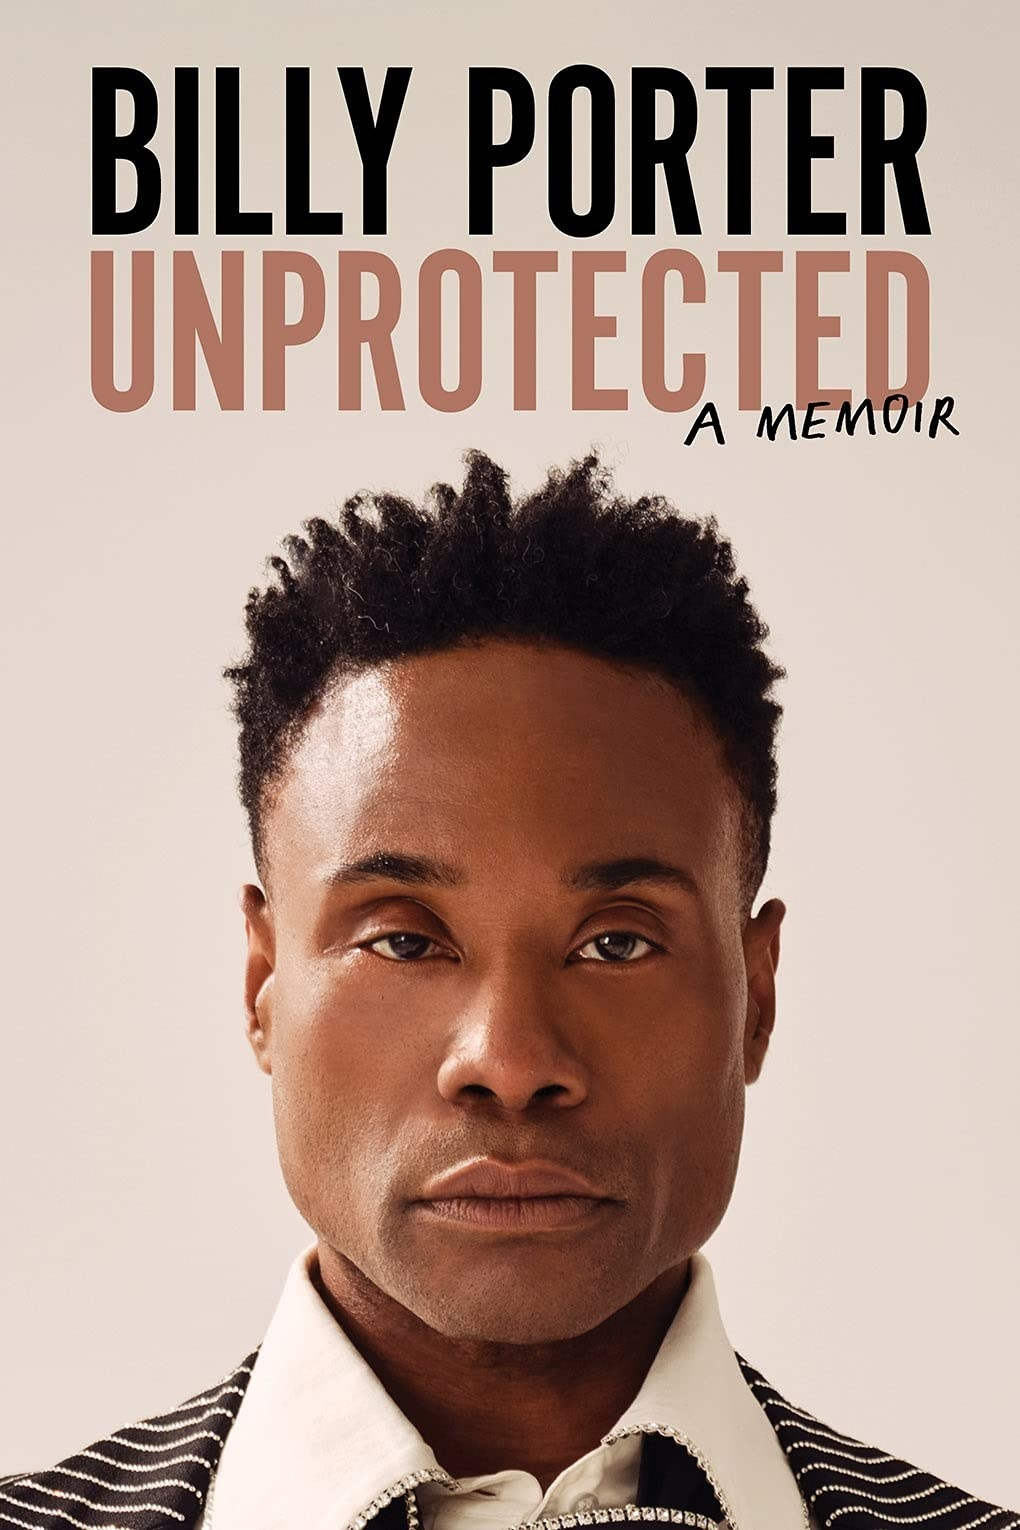 the memoir which features a profile image of Billy Porter